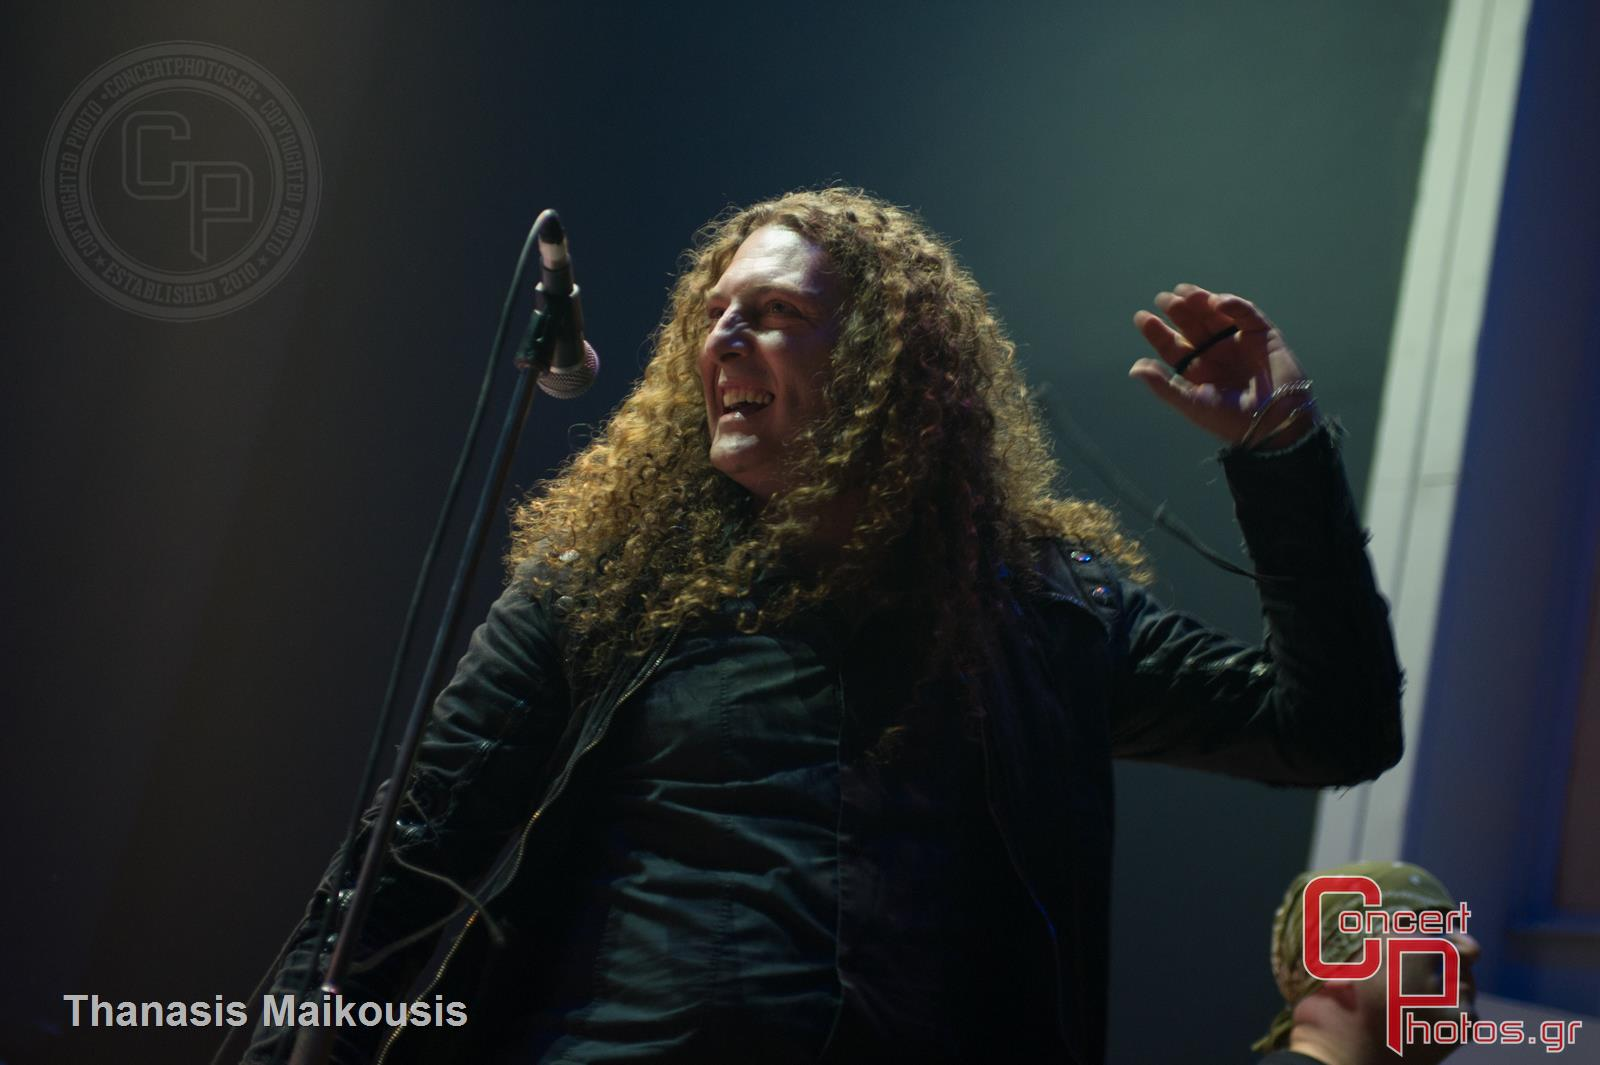 Gamma Ray + Rhapsody Of Fire-Gamma Ray Rhapsody Of Fire photographer: Thanasis Maikousis - _DSC1095